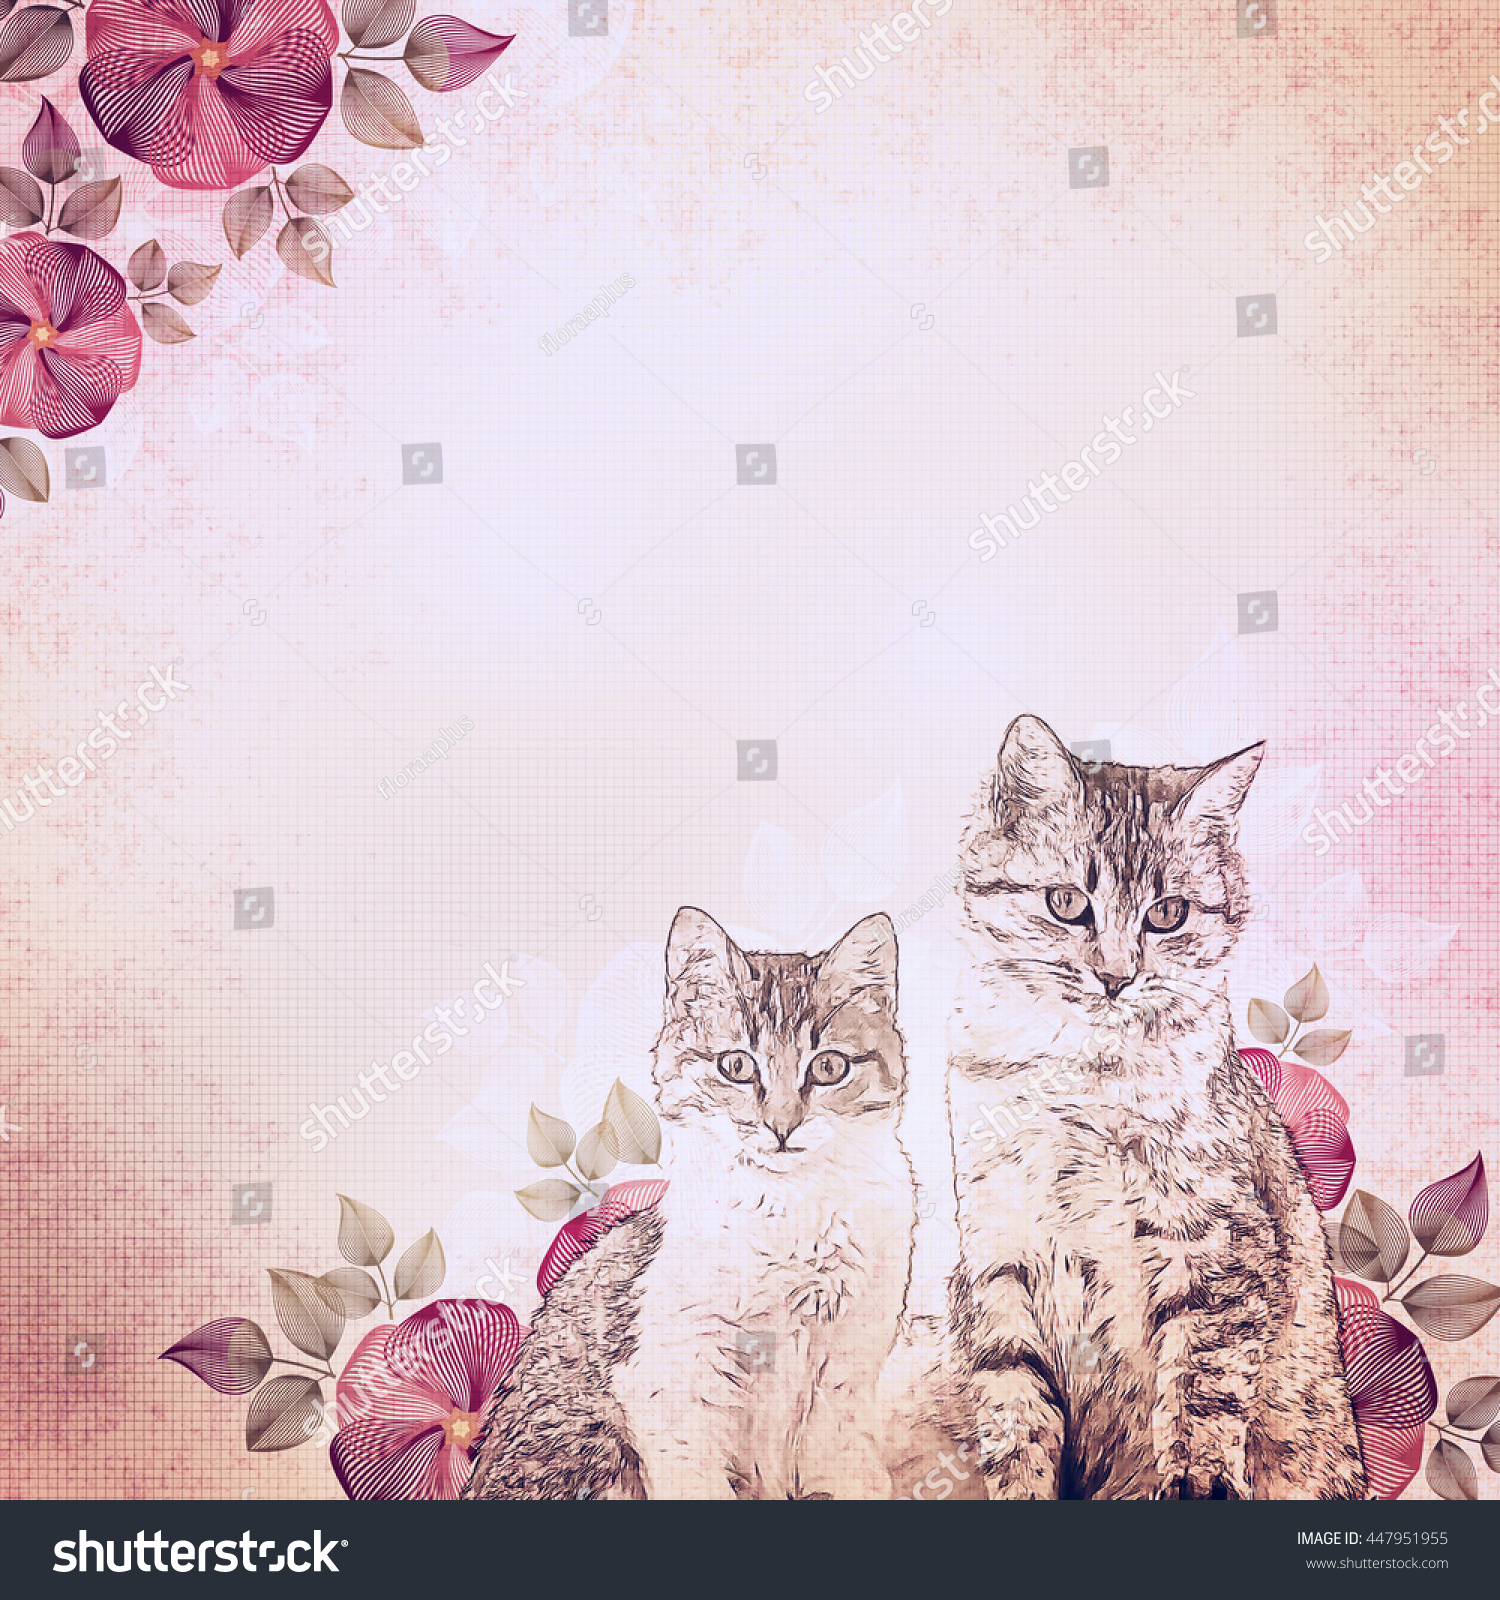 stock-photo-ancient-illustration-kittens